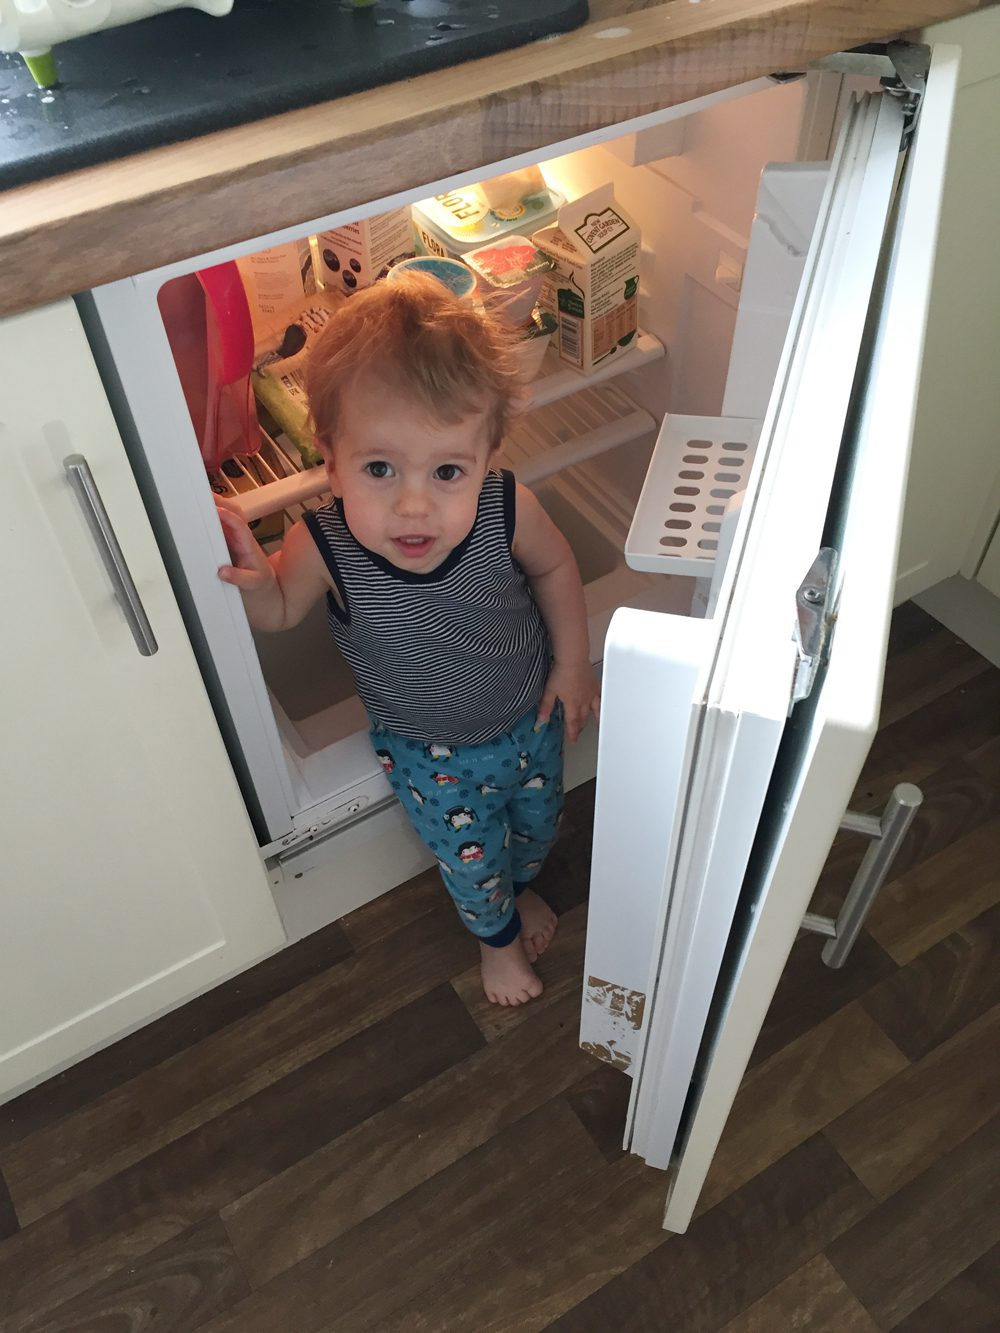 Finley in fridge: healthy eating for children